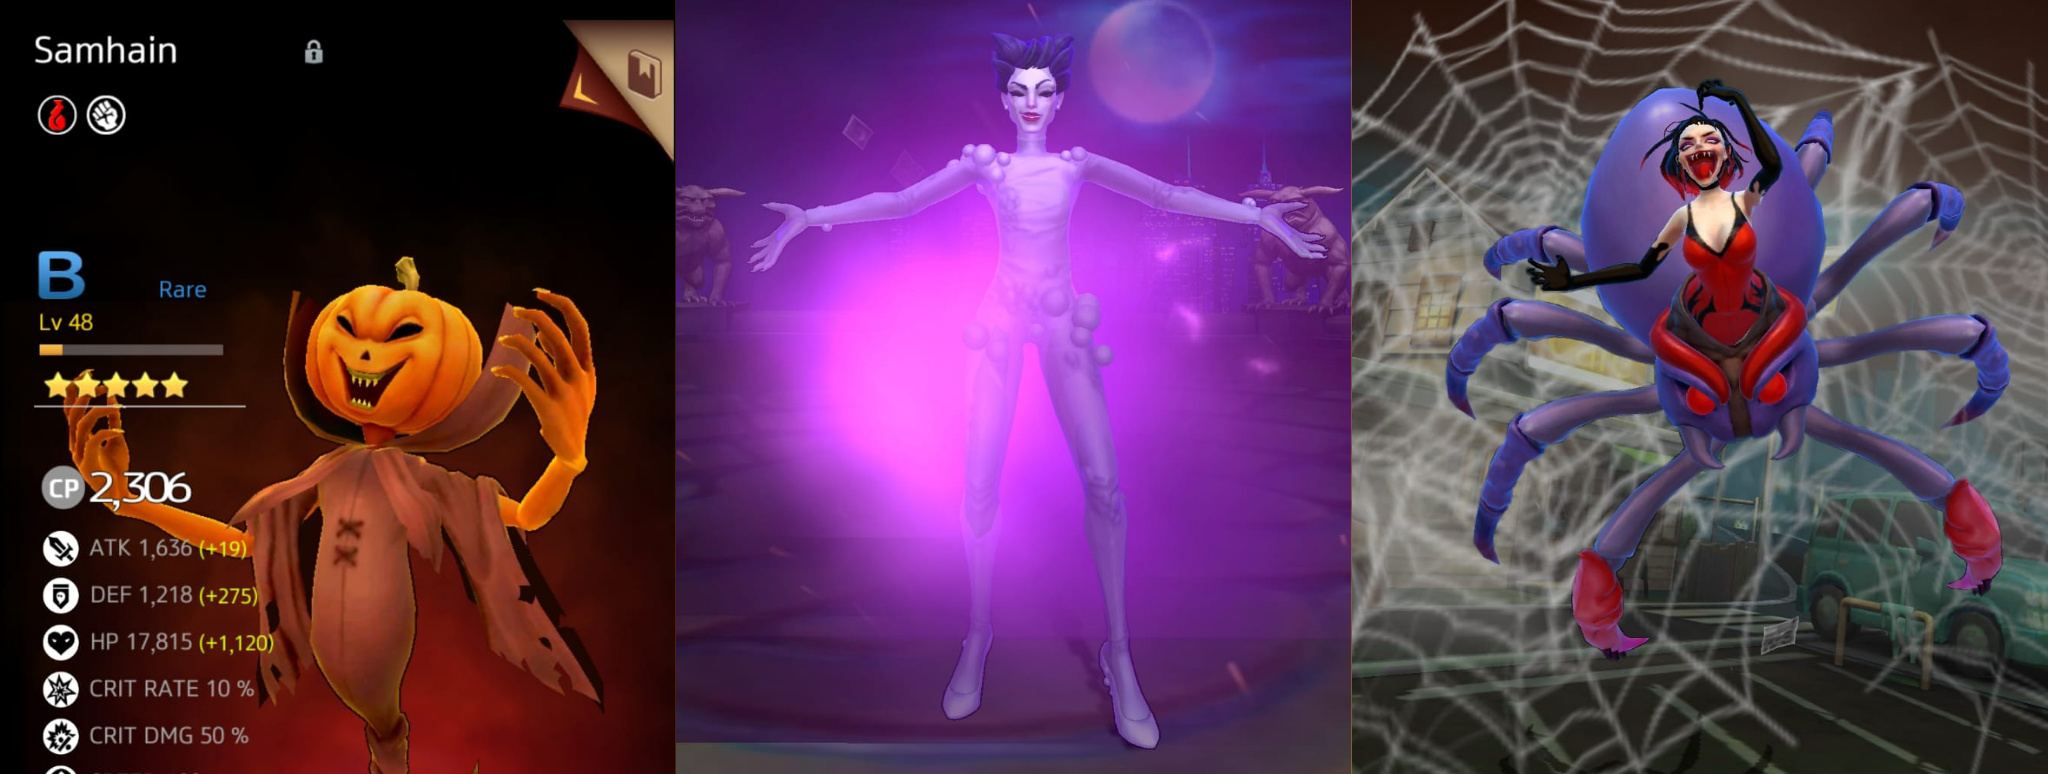 In foto: Samhain (The Real Ghostbusters), Gozer (Ghostbusters 1984), Strega dei ragni (Ghostbusters: The video game)